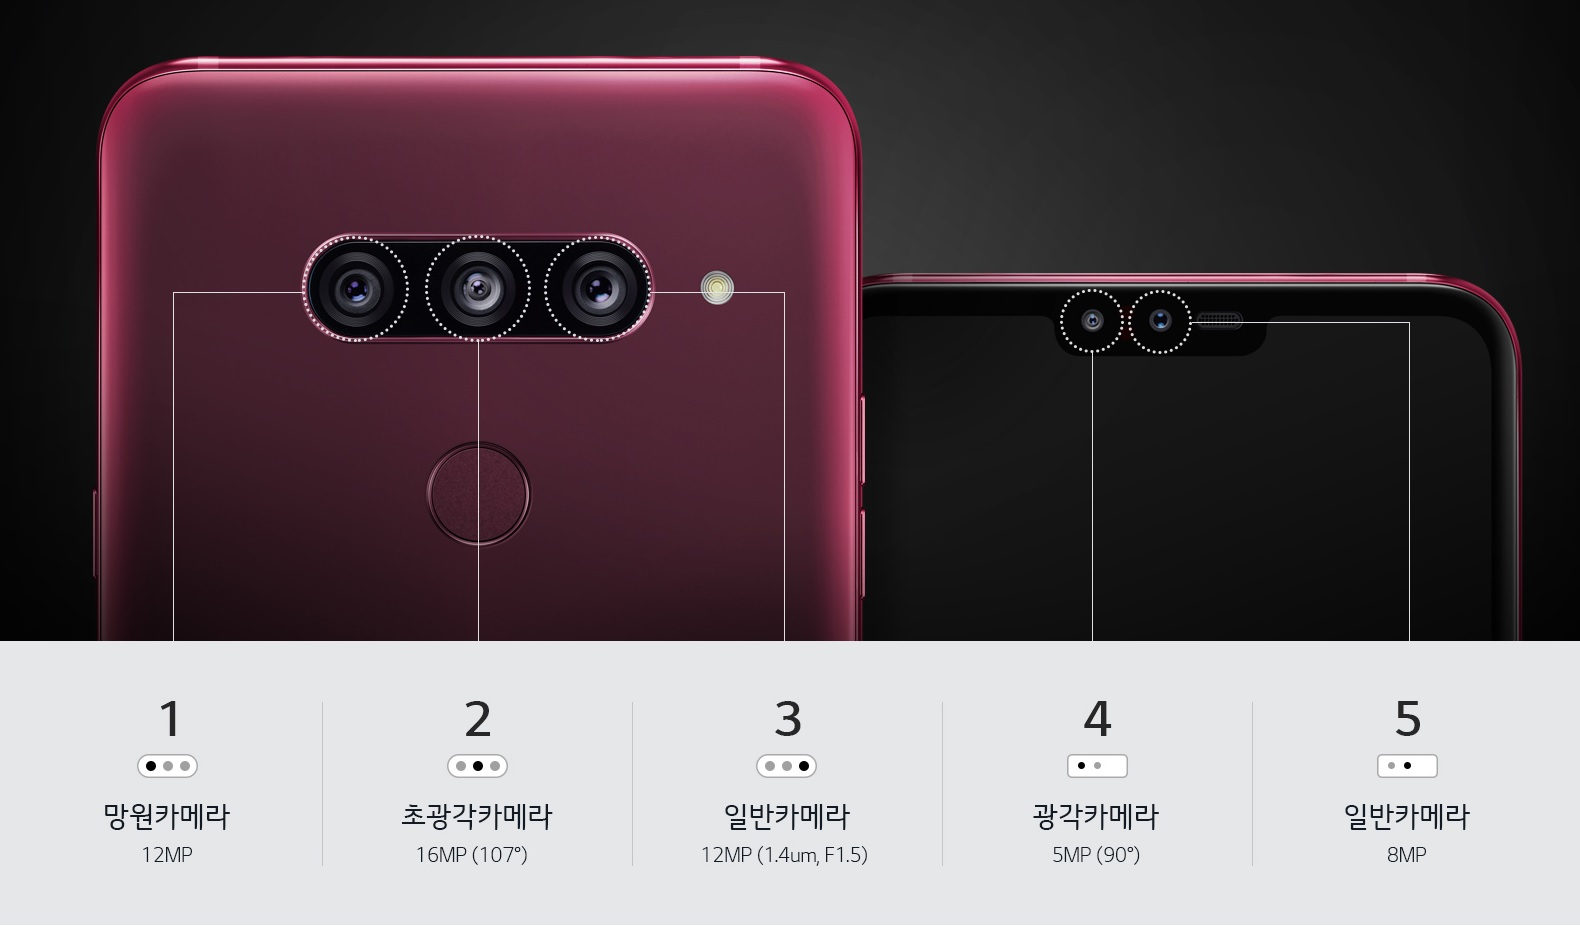 LG V40 ThinQ: European model now supports bootloader unlocking